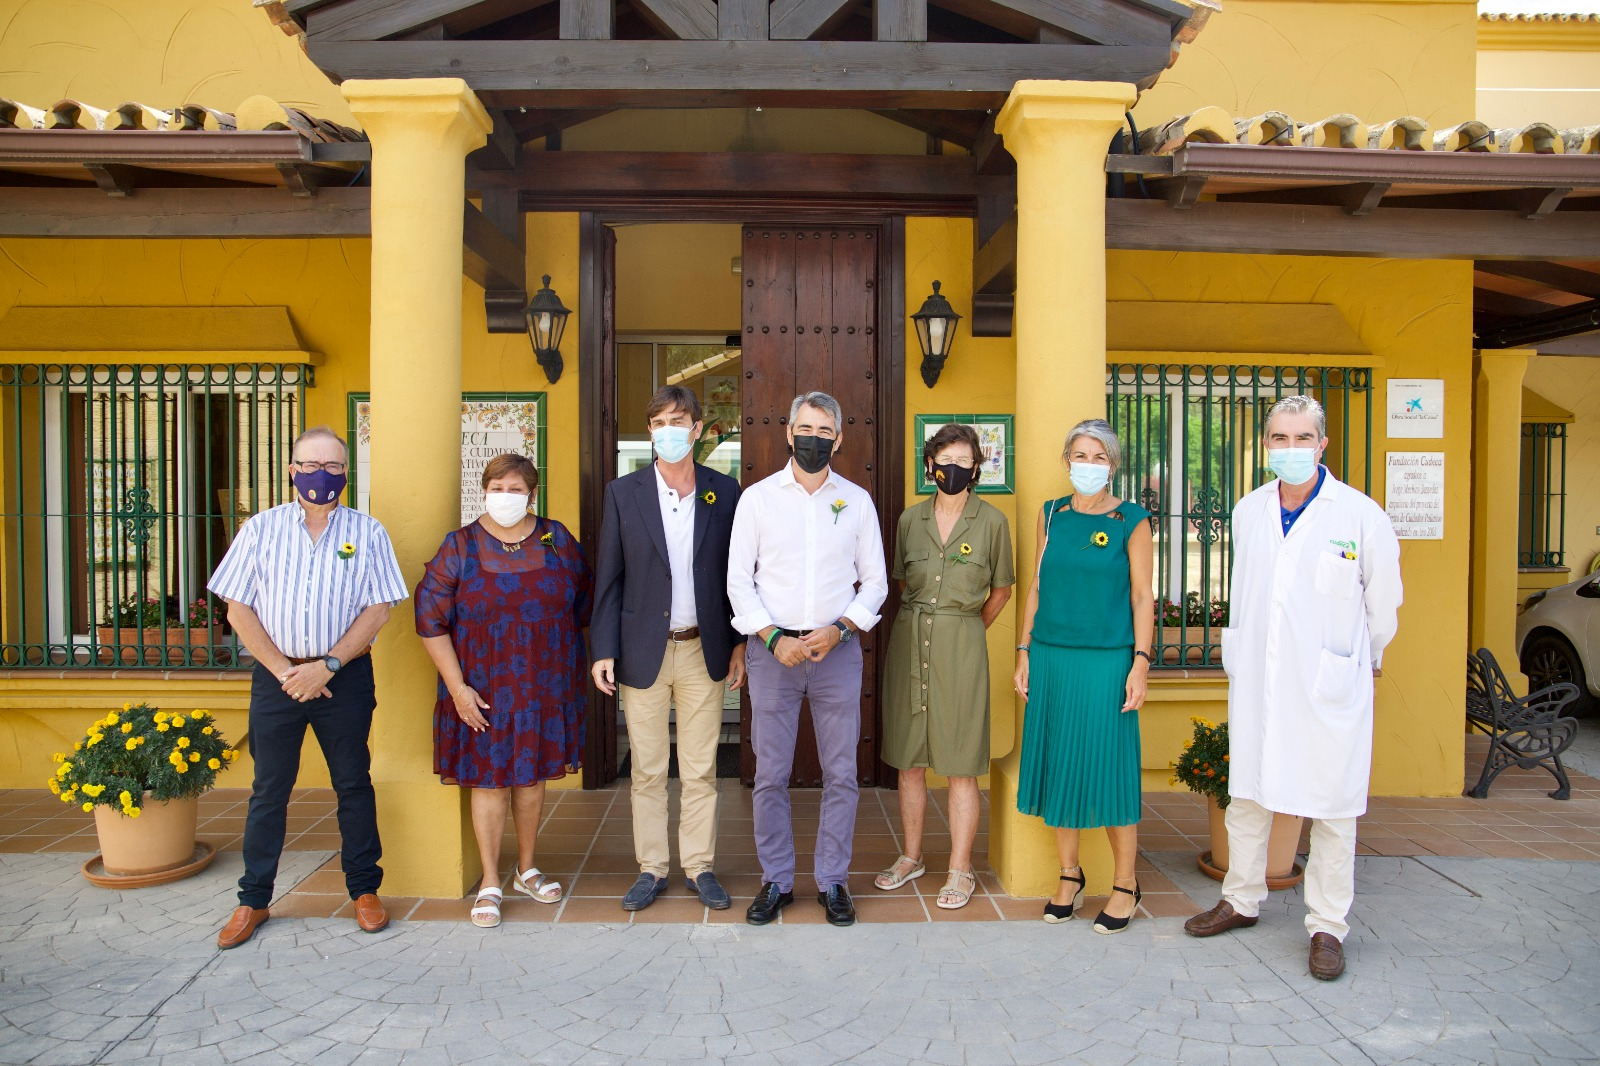 Mayor of Benalmádena, Víctor Navas, visits Cudeca and announces two important pieces of news